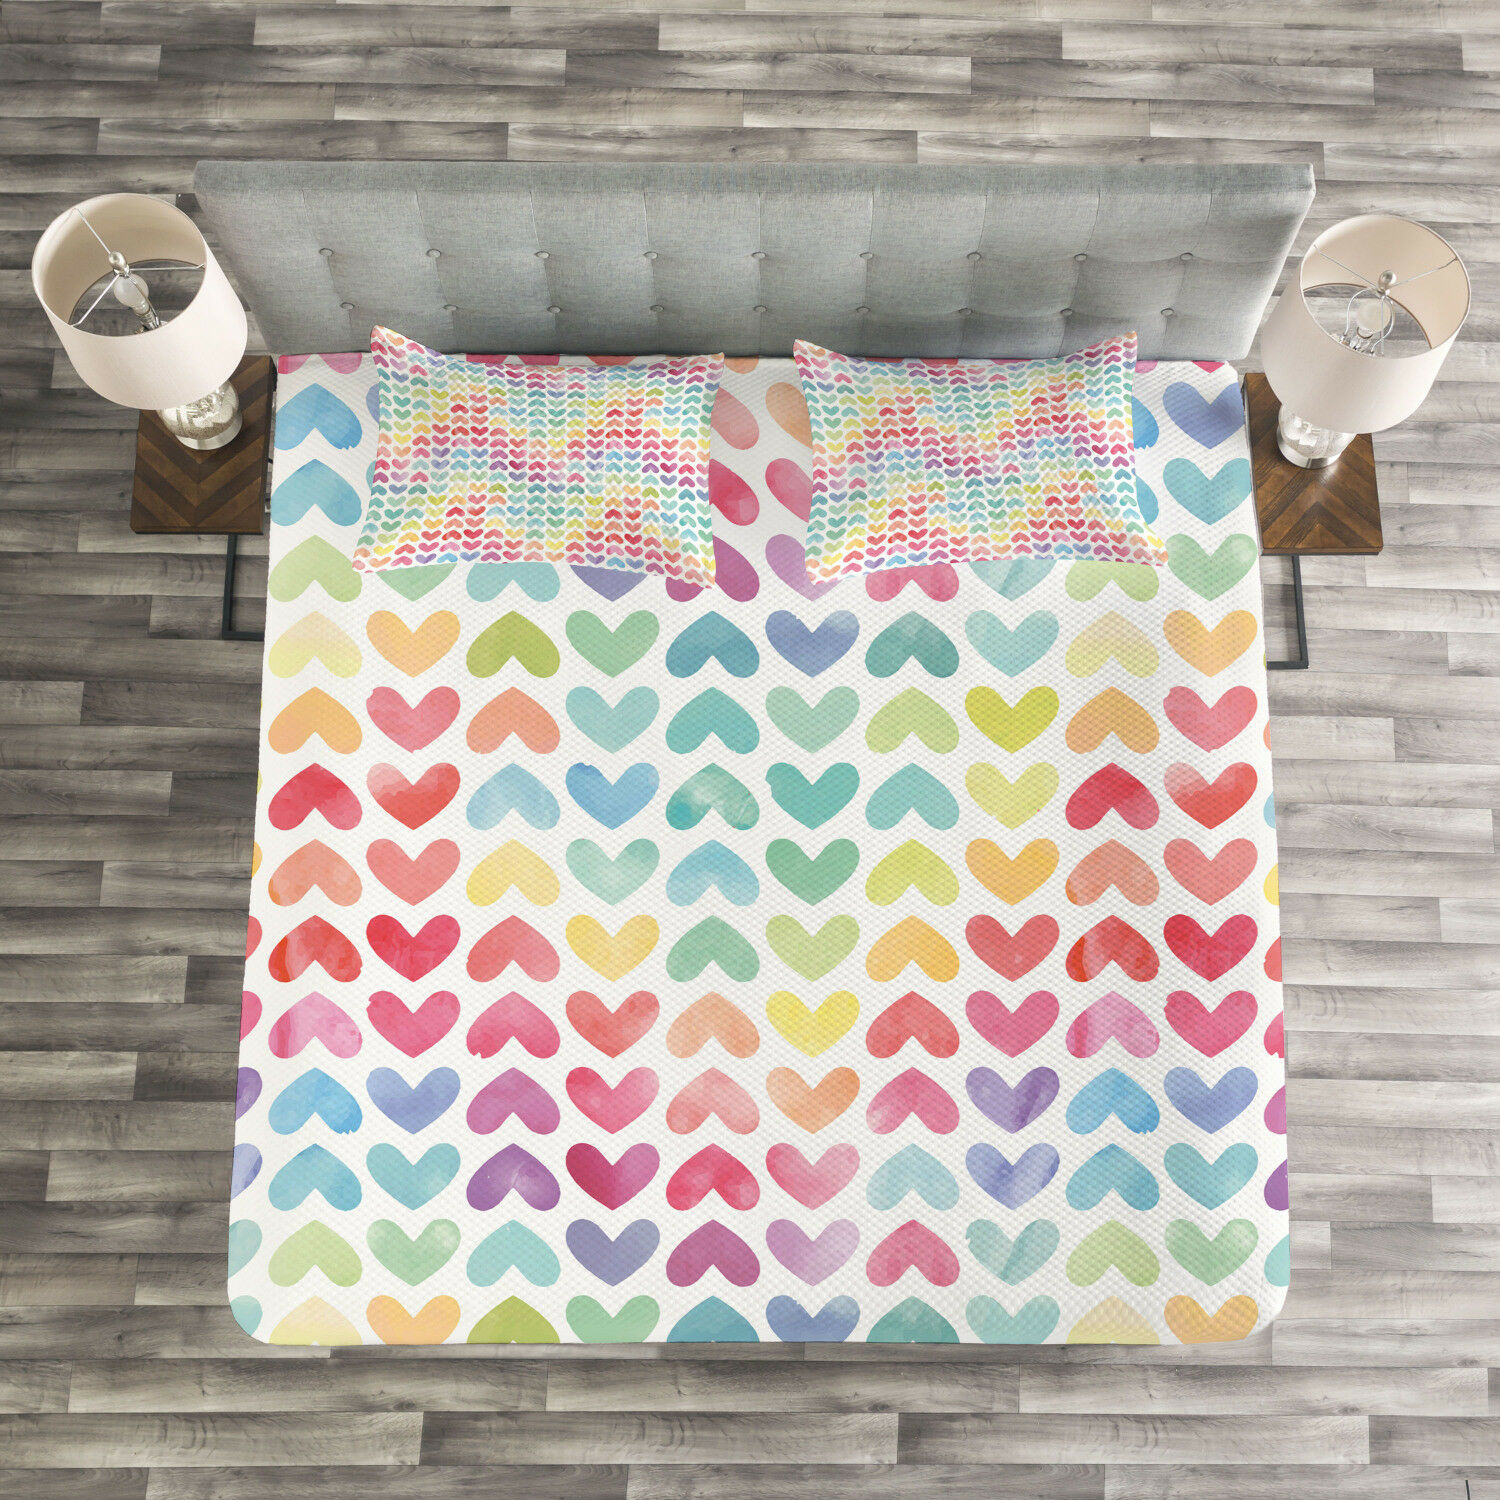 Watercolor Quilted Bedspread & Pillow Shams Set, colorful Cute Hearts Print